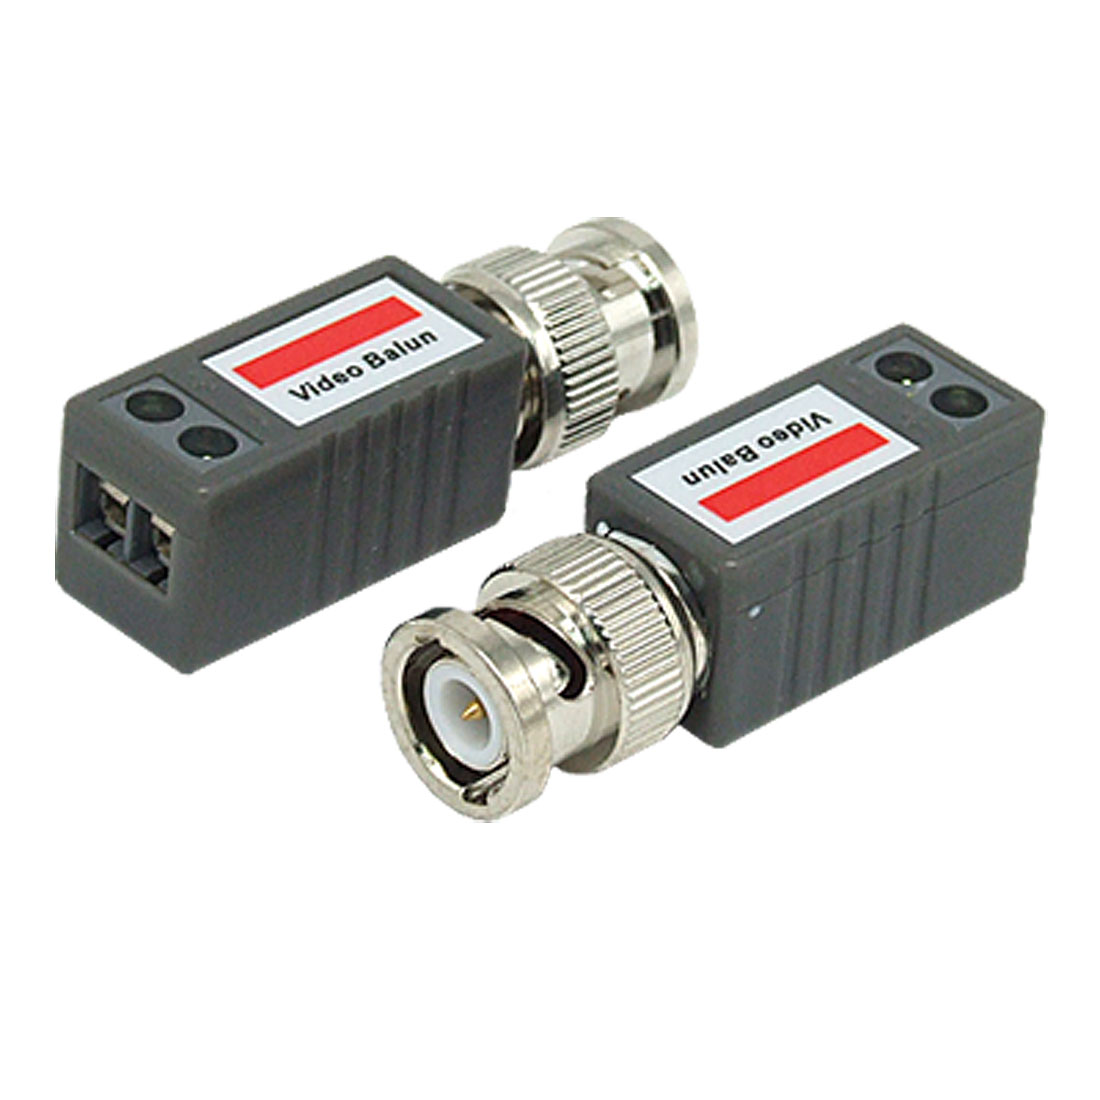 2 CCTV Passive Video Balun UTP BNC Cat5 Transceiver